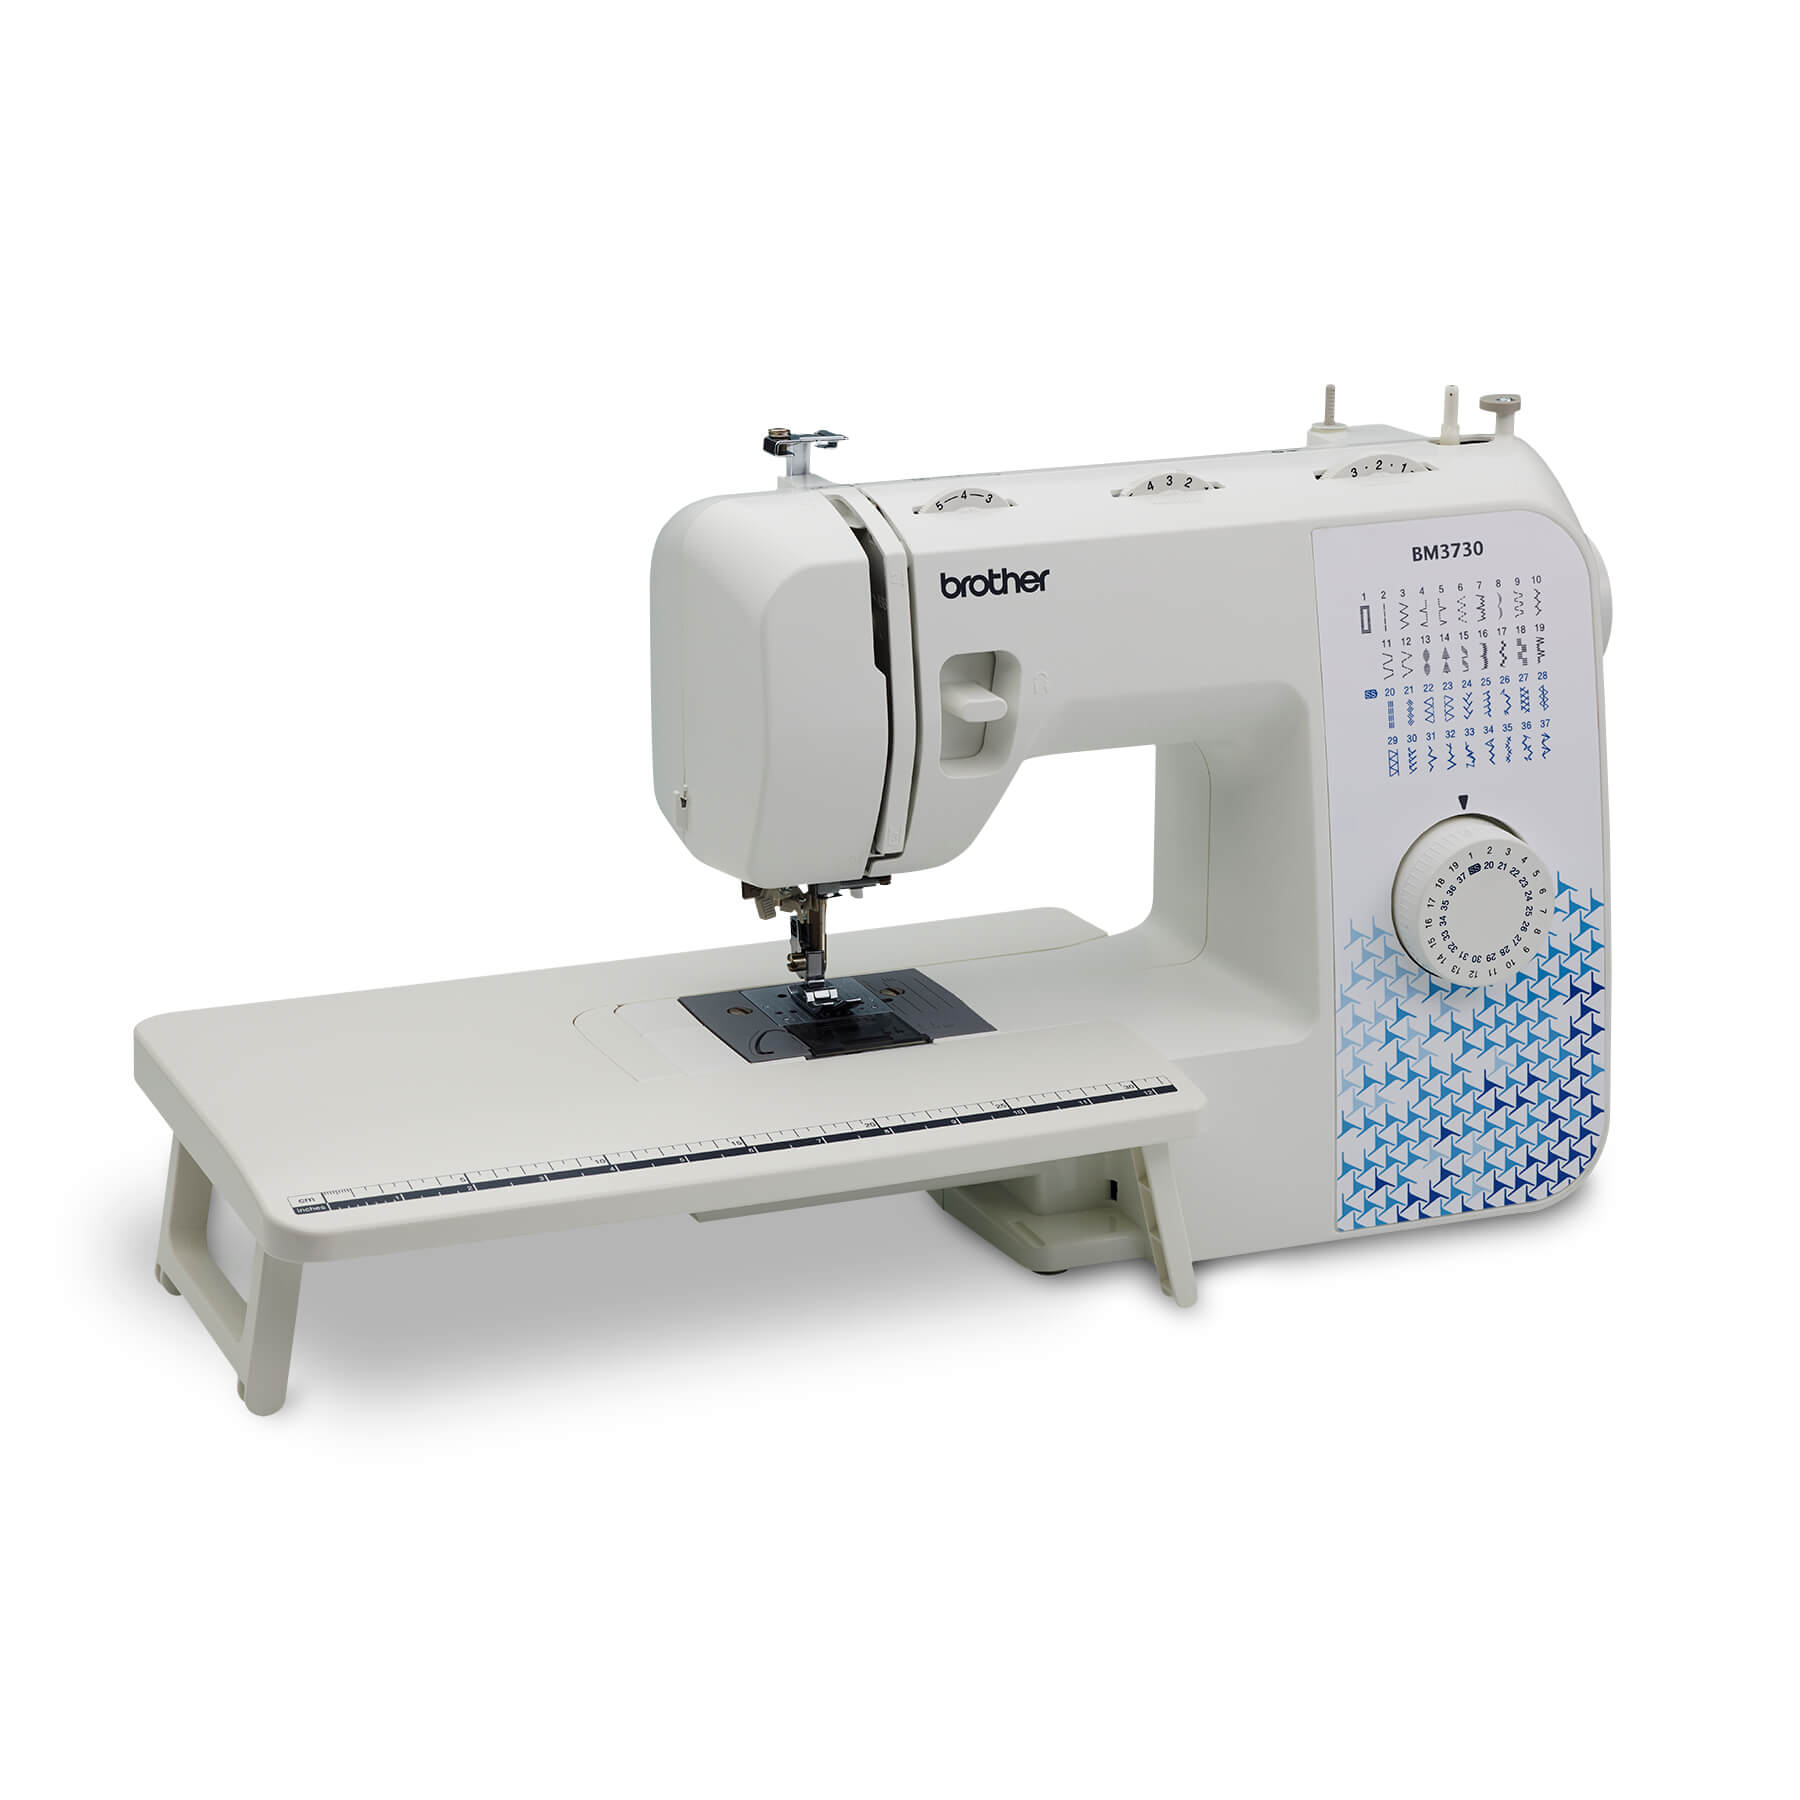 fabric notions australia category sewing machines s patchwork online buy quilt store largest header square quilting